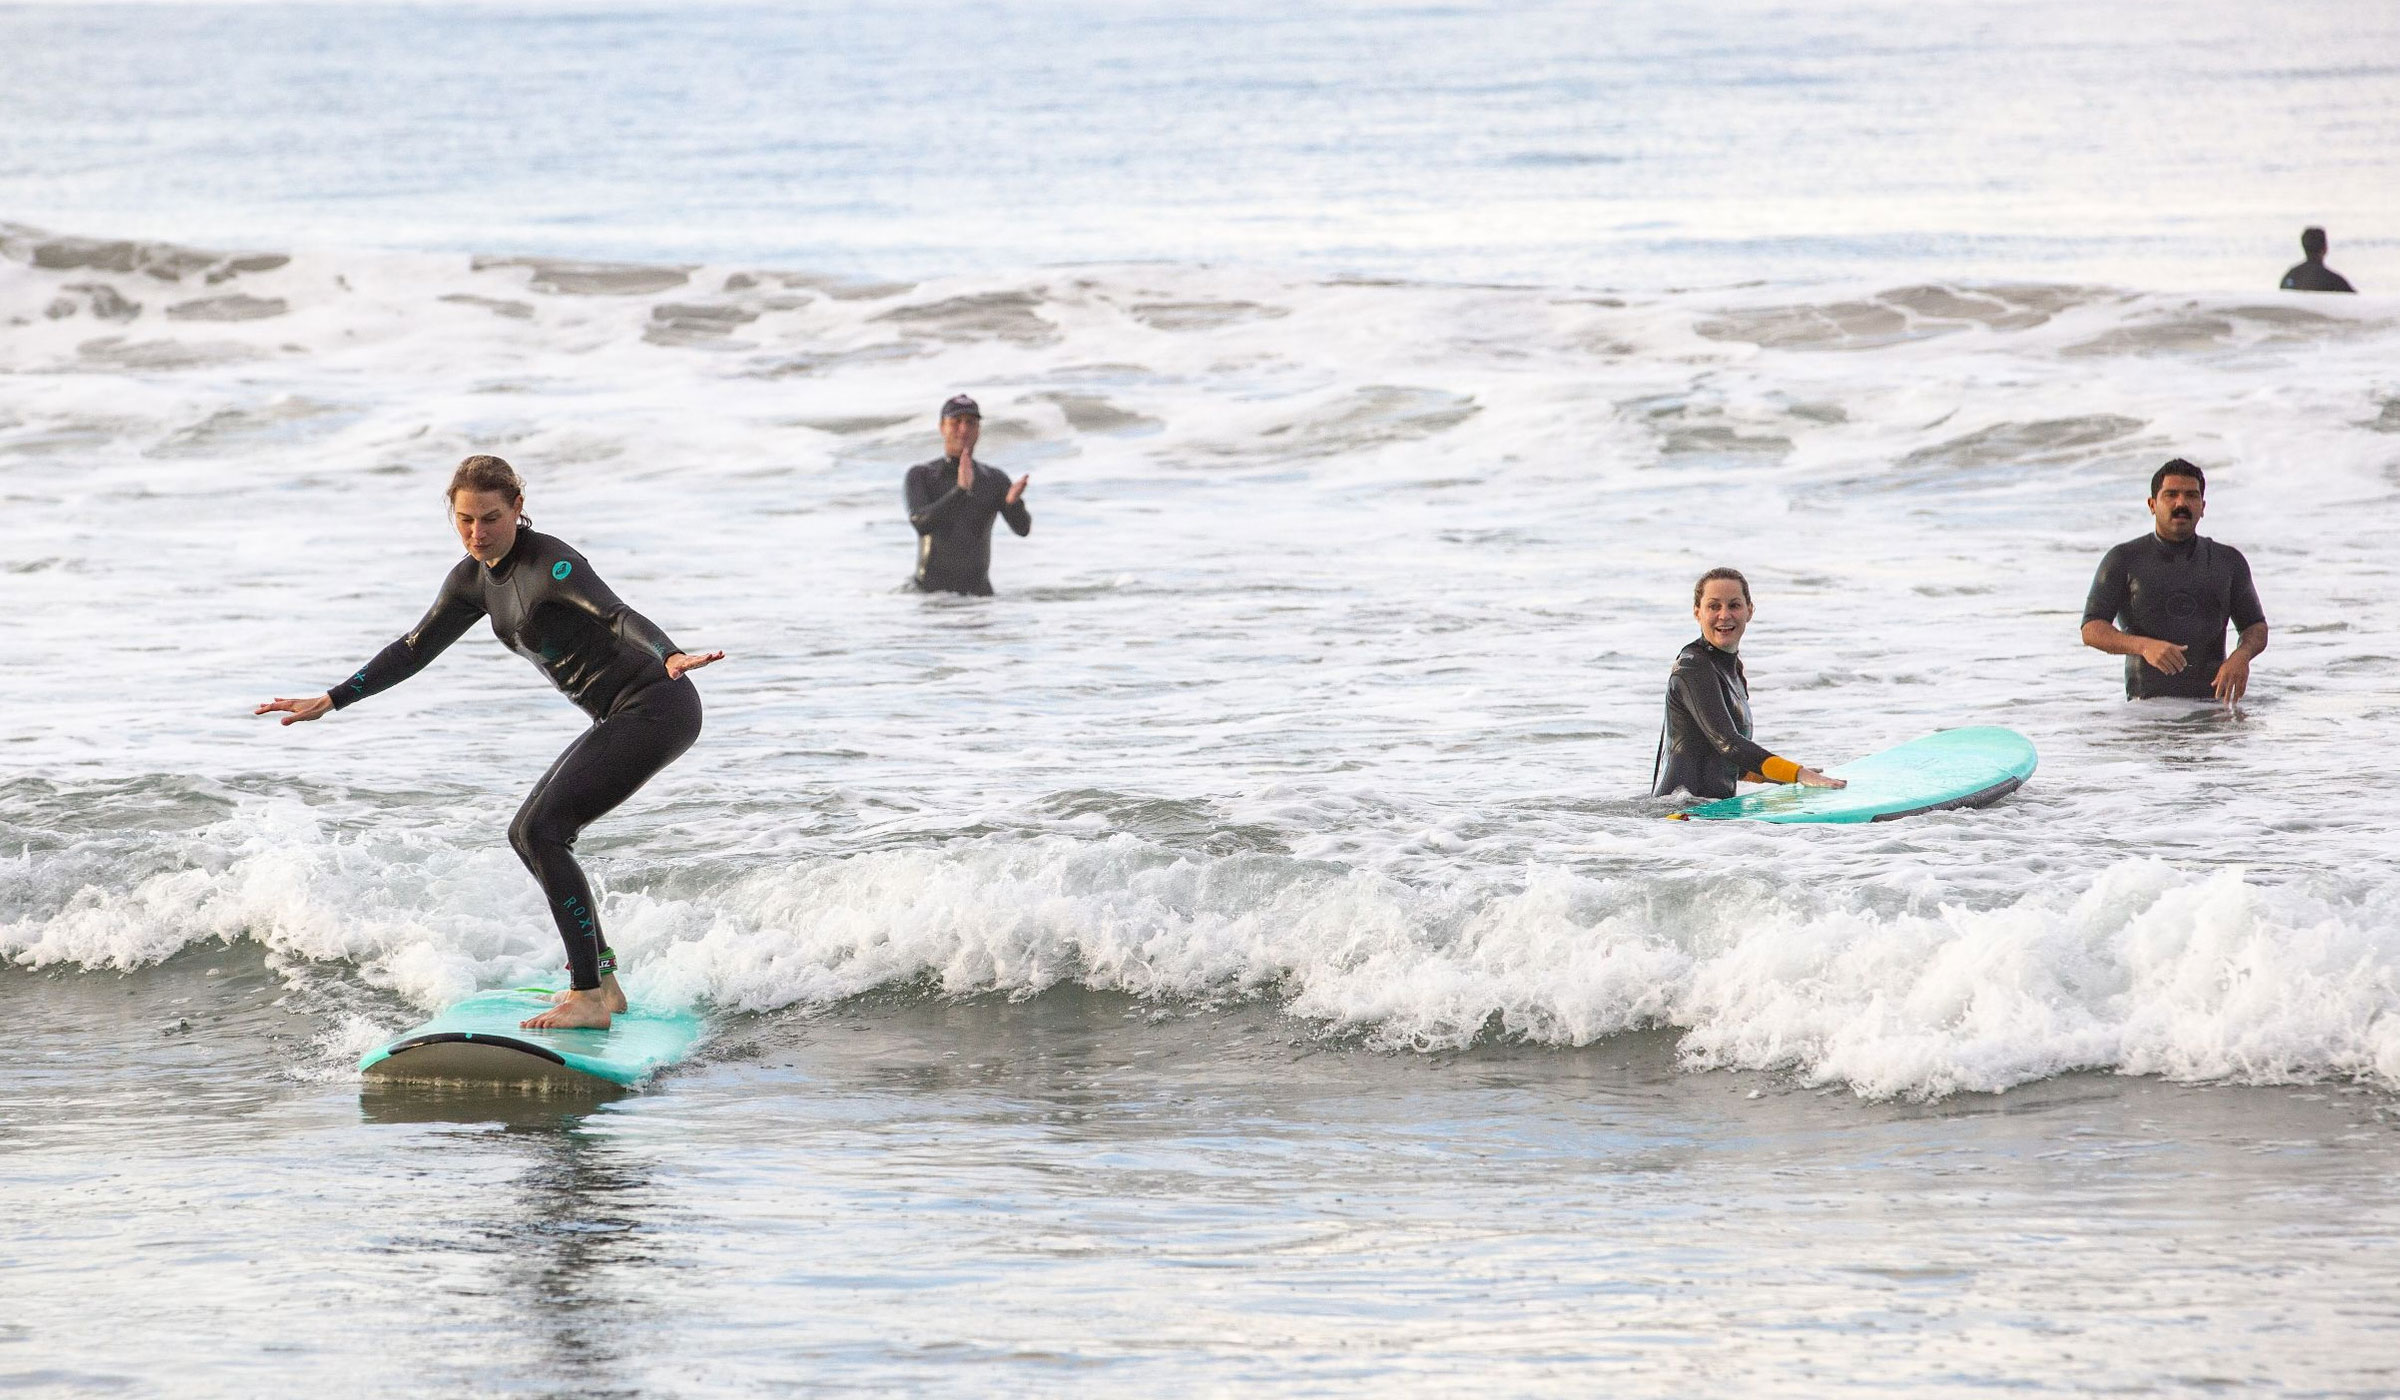 Surf Lesson - Private Solo Surf Camp 4 hours - Venice Beach - Image 1